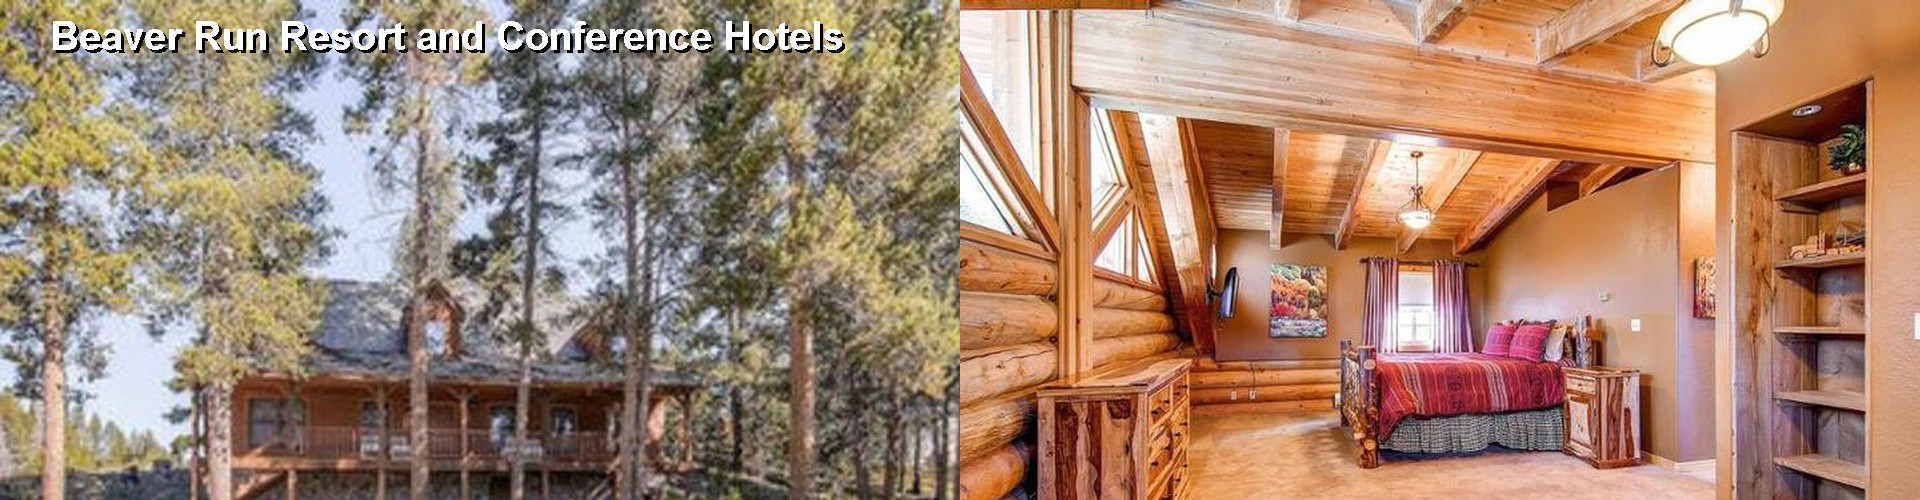 5 Best Hotels near Beaver Run Resort and Conference